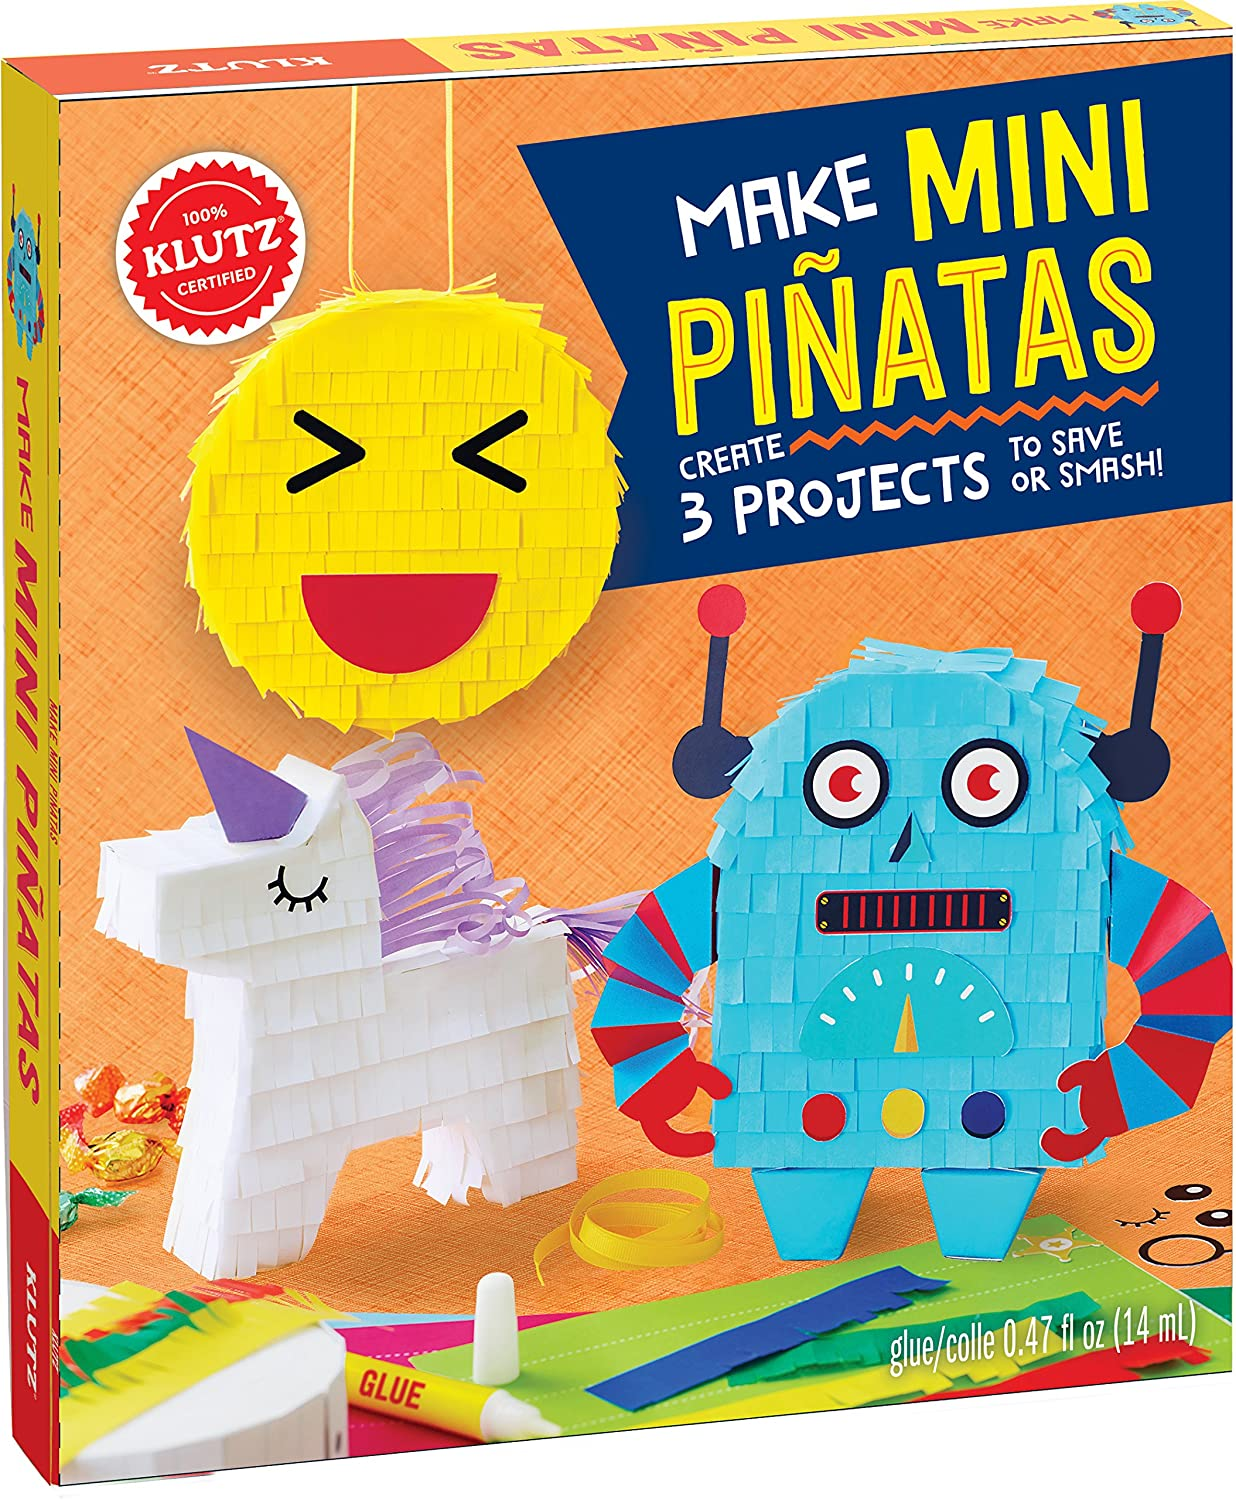 5 Activity Book; C Non-character; 9 L Non-fiction; Non Tie-in CHILD: Leisure CHILD: Non-Fiction 5+ JUVENILE General Techniques Crafts /& Hobbies Games /& Activities 7-9 years; 7 Klutz Make Mini Pi/ñatas Klutz Press SG/_133815883X/_US Art